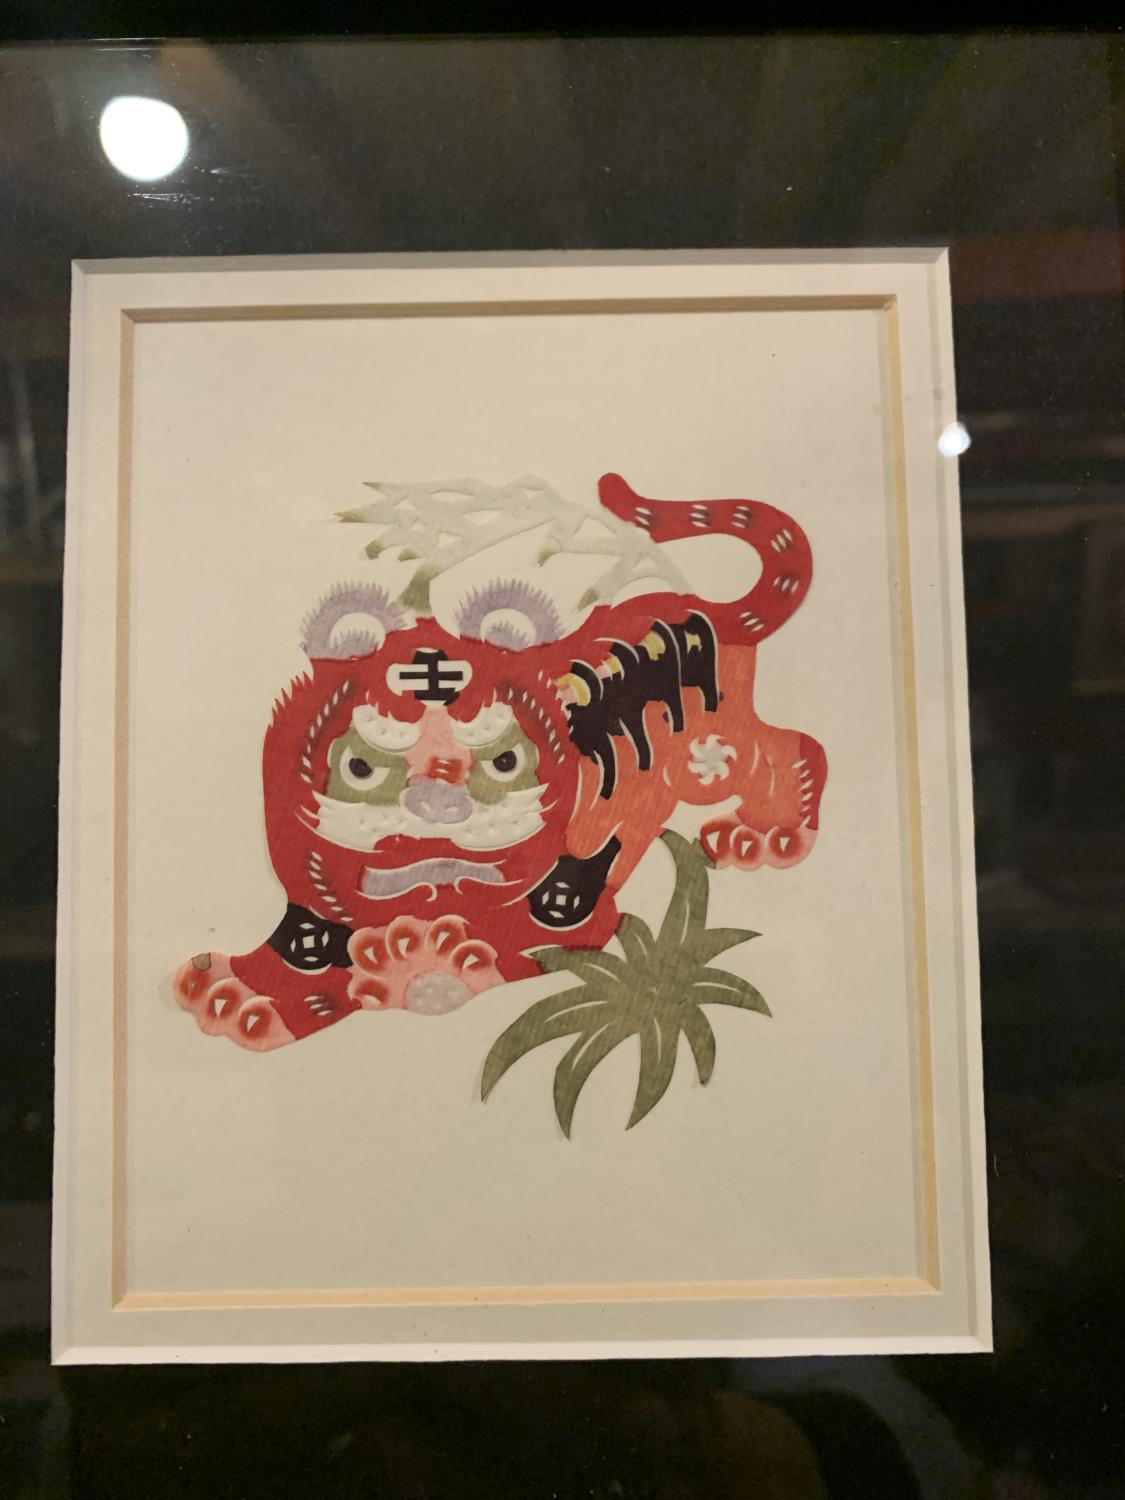 FIVE COLLAGE ORIENTAL STYLE INSPIRED FRAMED PIECES OF ART - Image 4 of 12